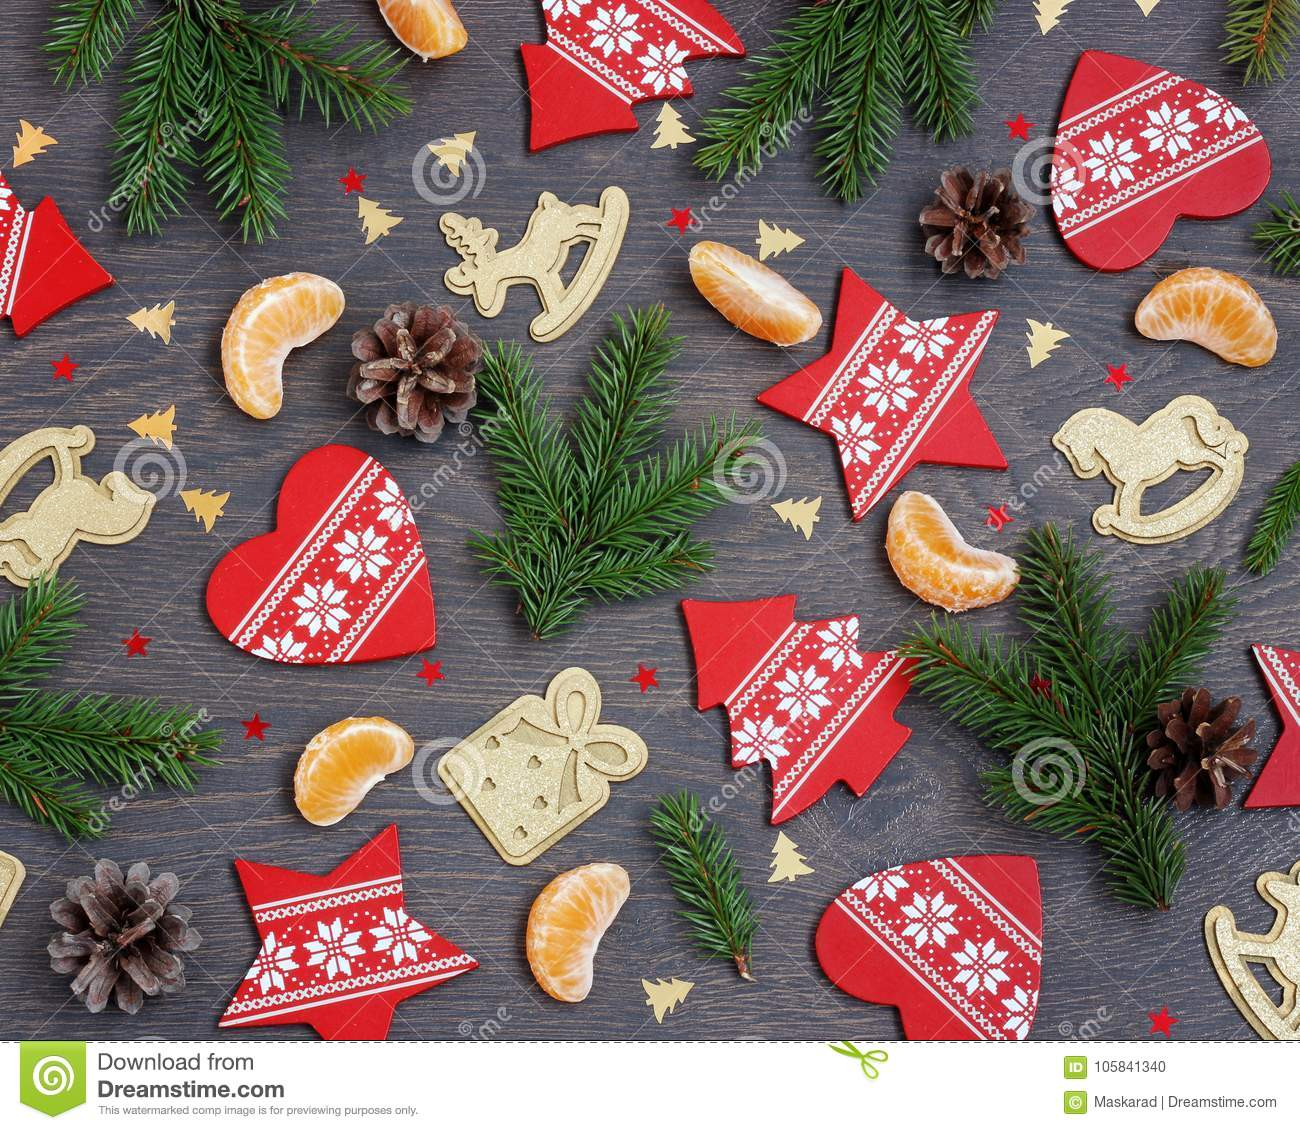 festive background with christmas tree branches segments of mandarins decorations and confetti on a wooden platform the view from the top